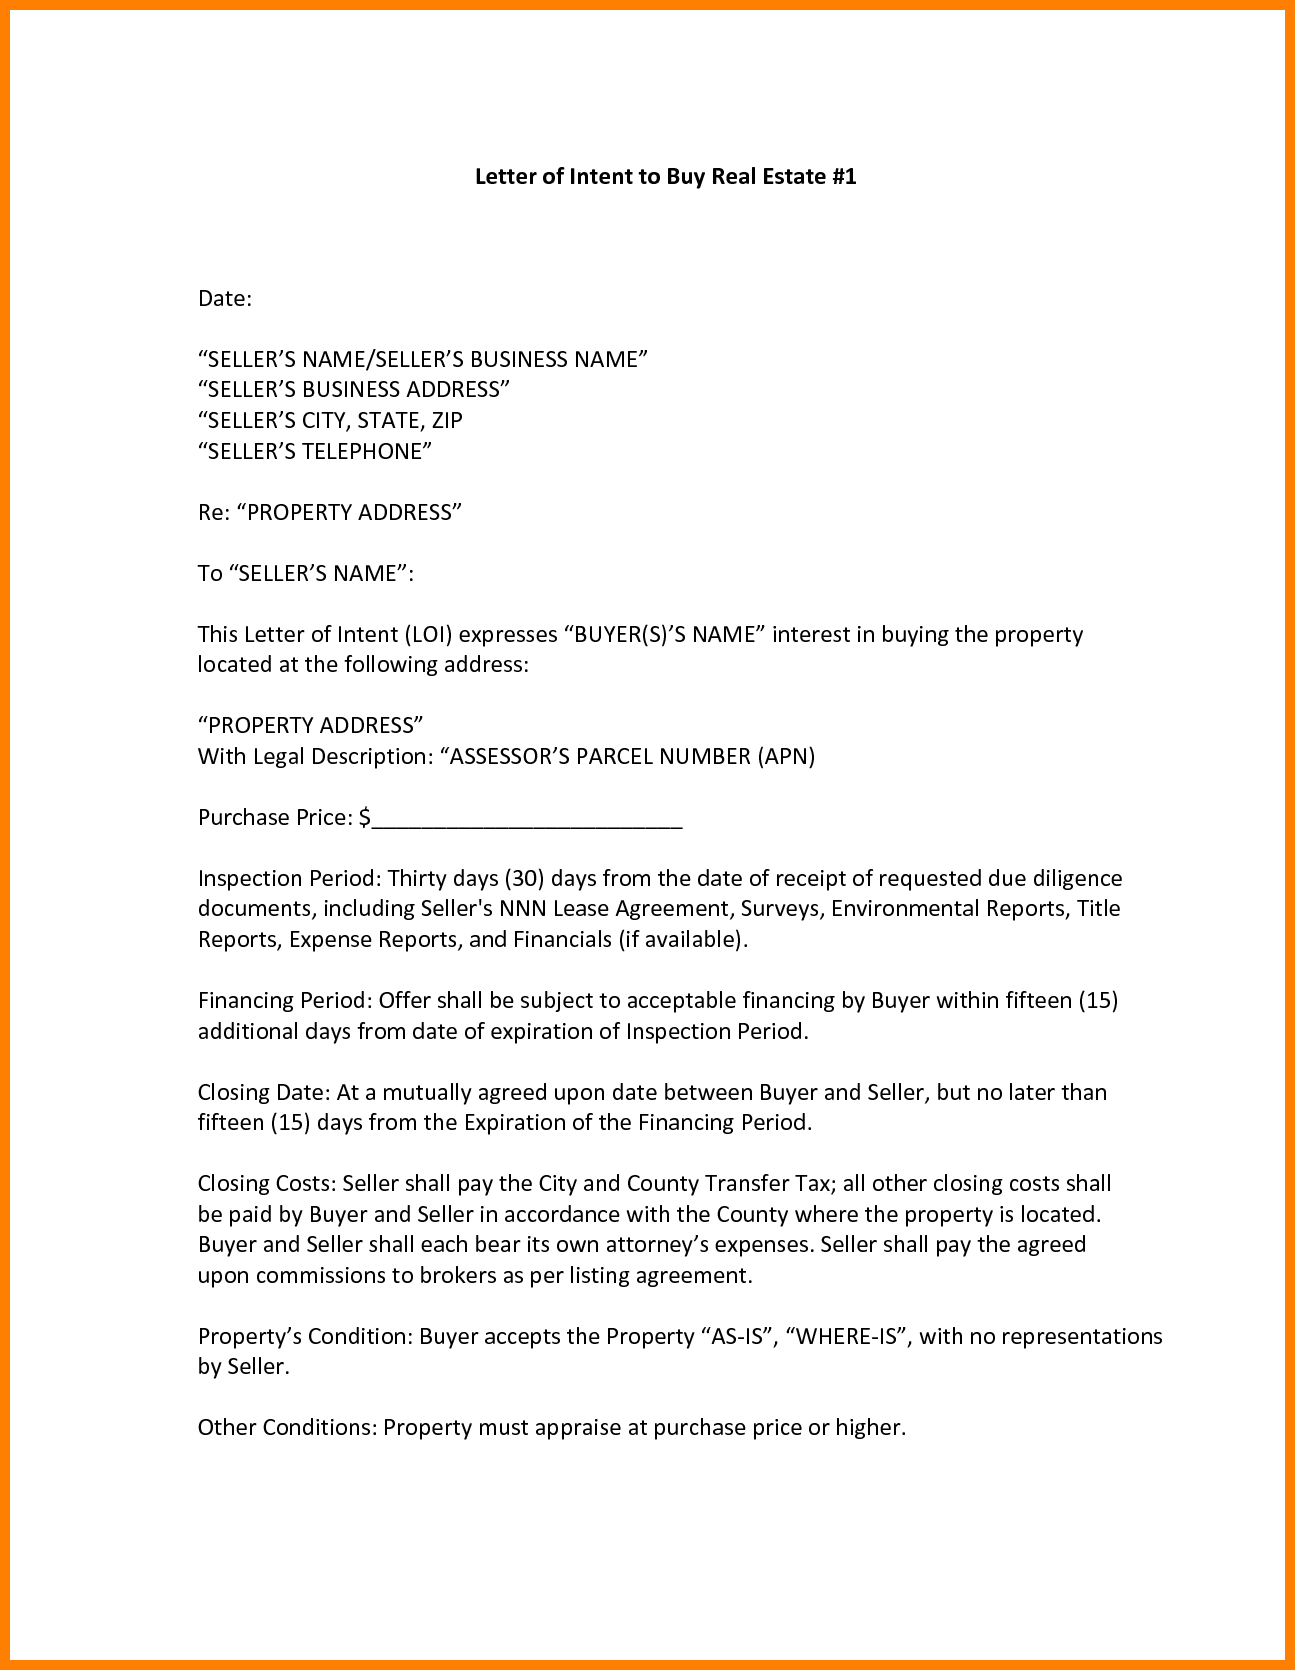 Real Estate Letter Of Intent Template - Letter Intent to Buy Property Samplechase Real Estate Template